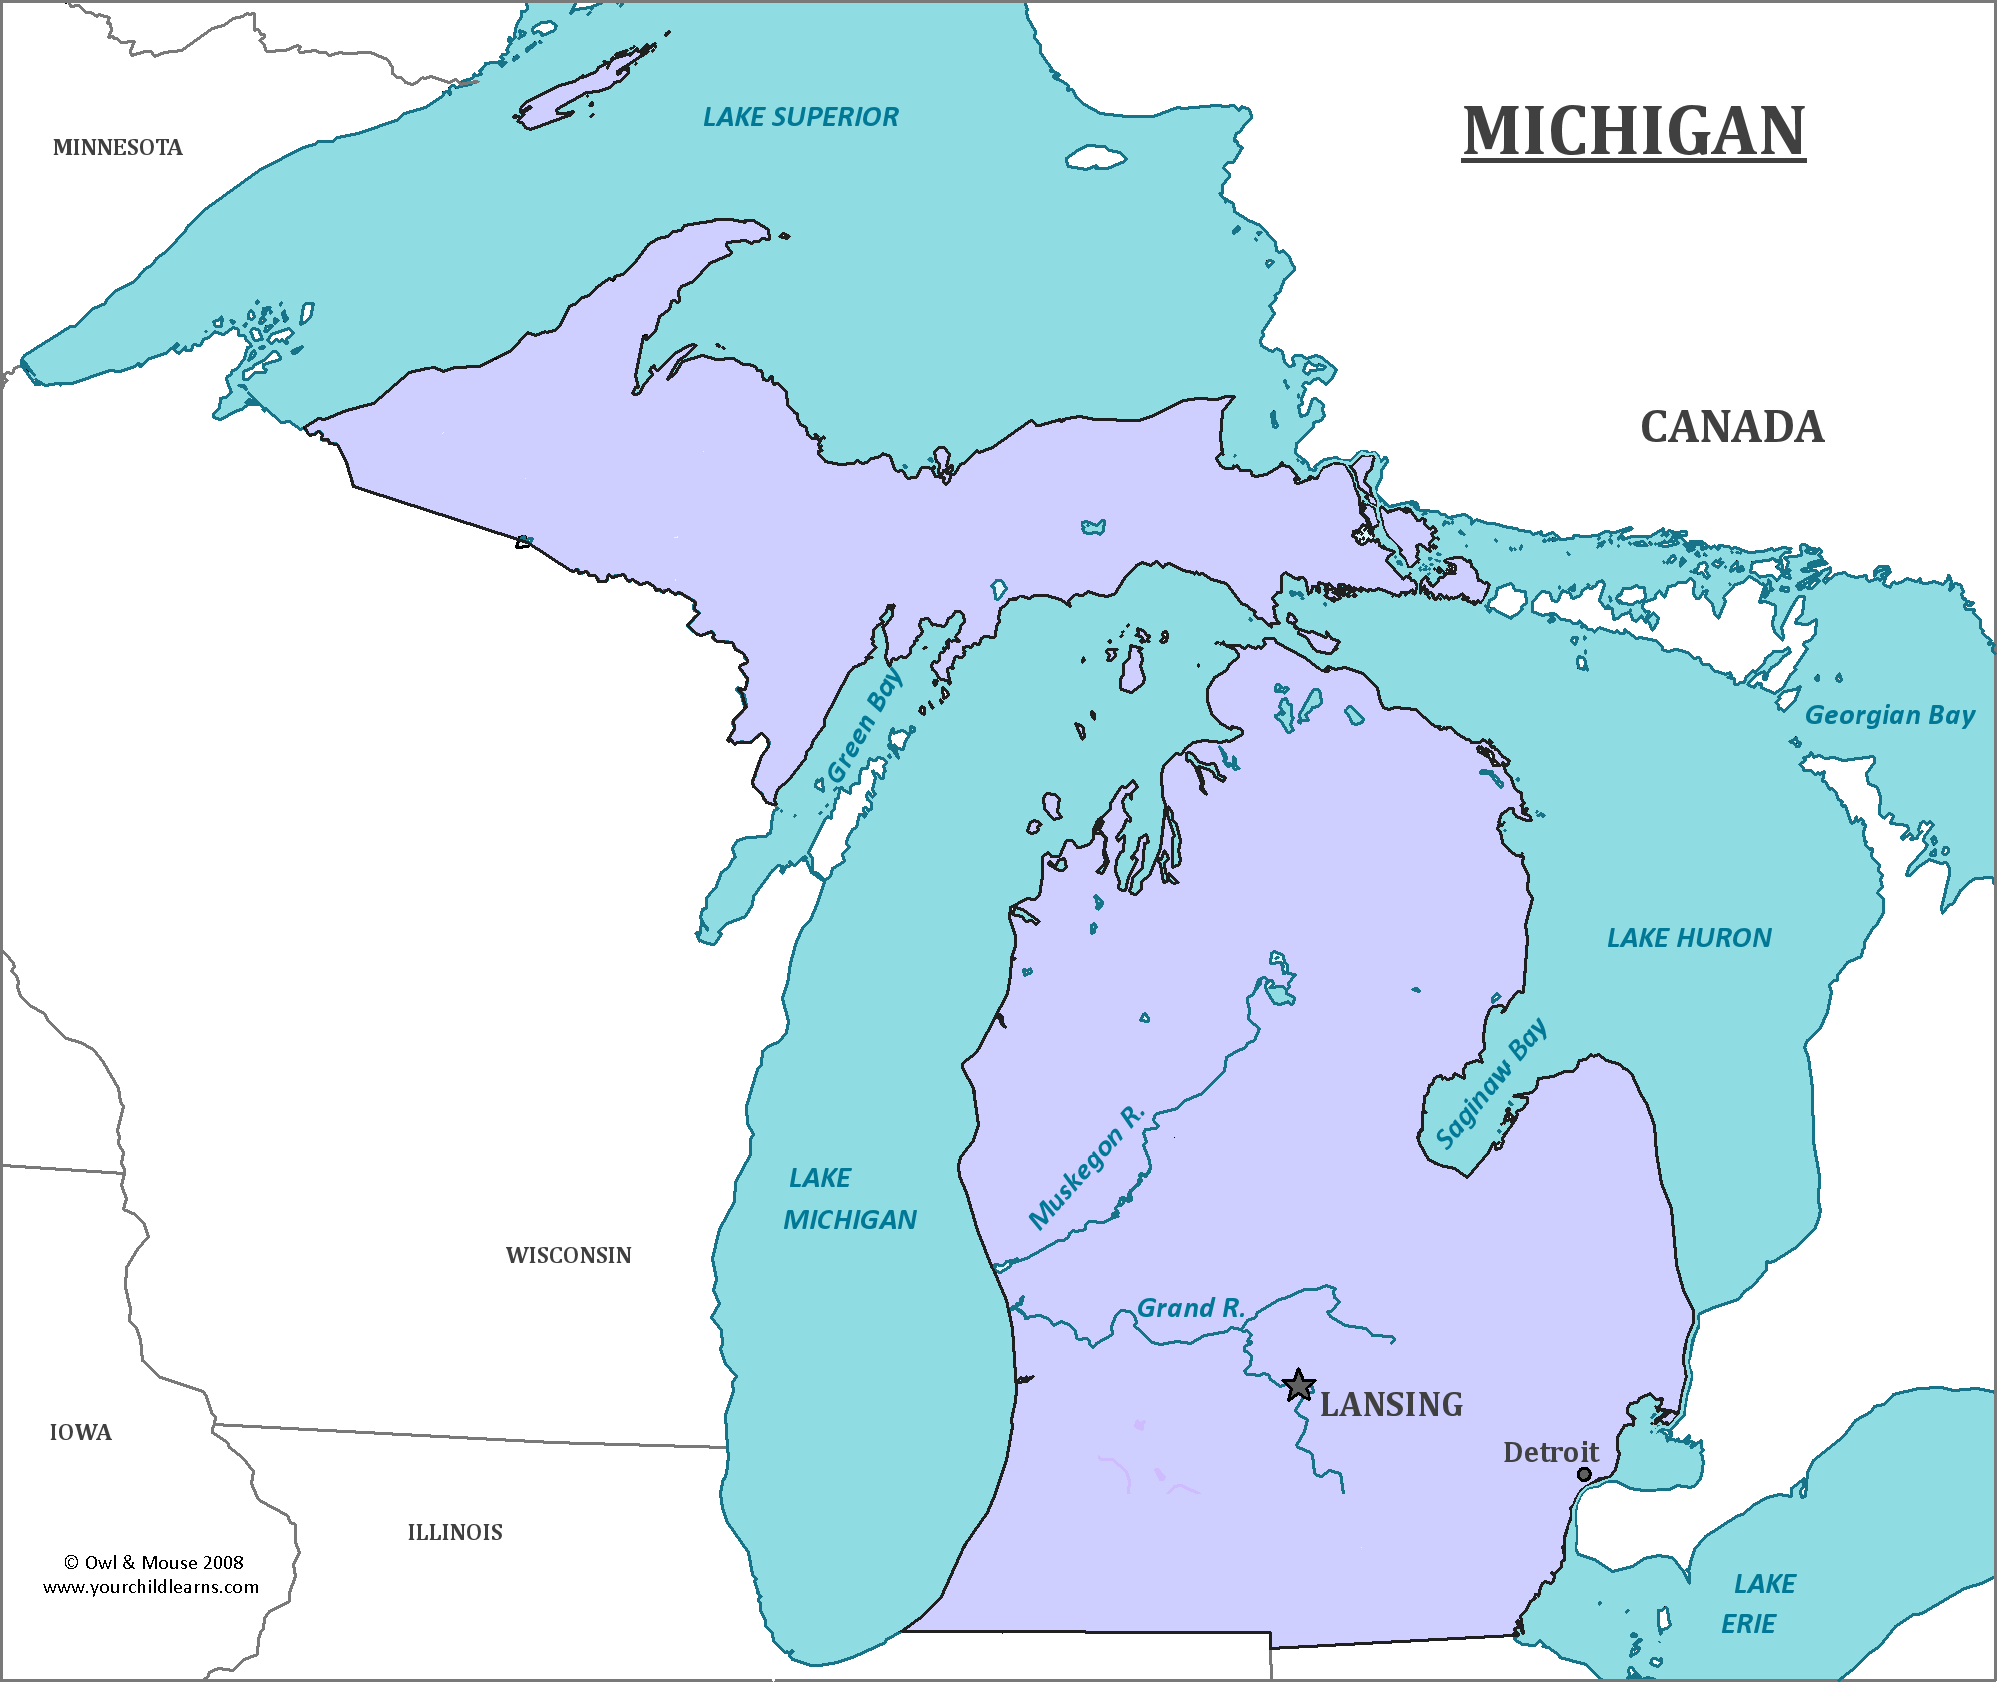 Michigan State Map Map Of Michigan And Information About The State - State map of michigan